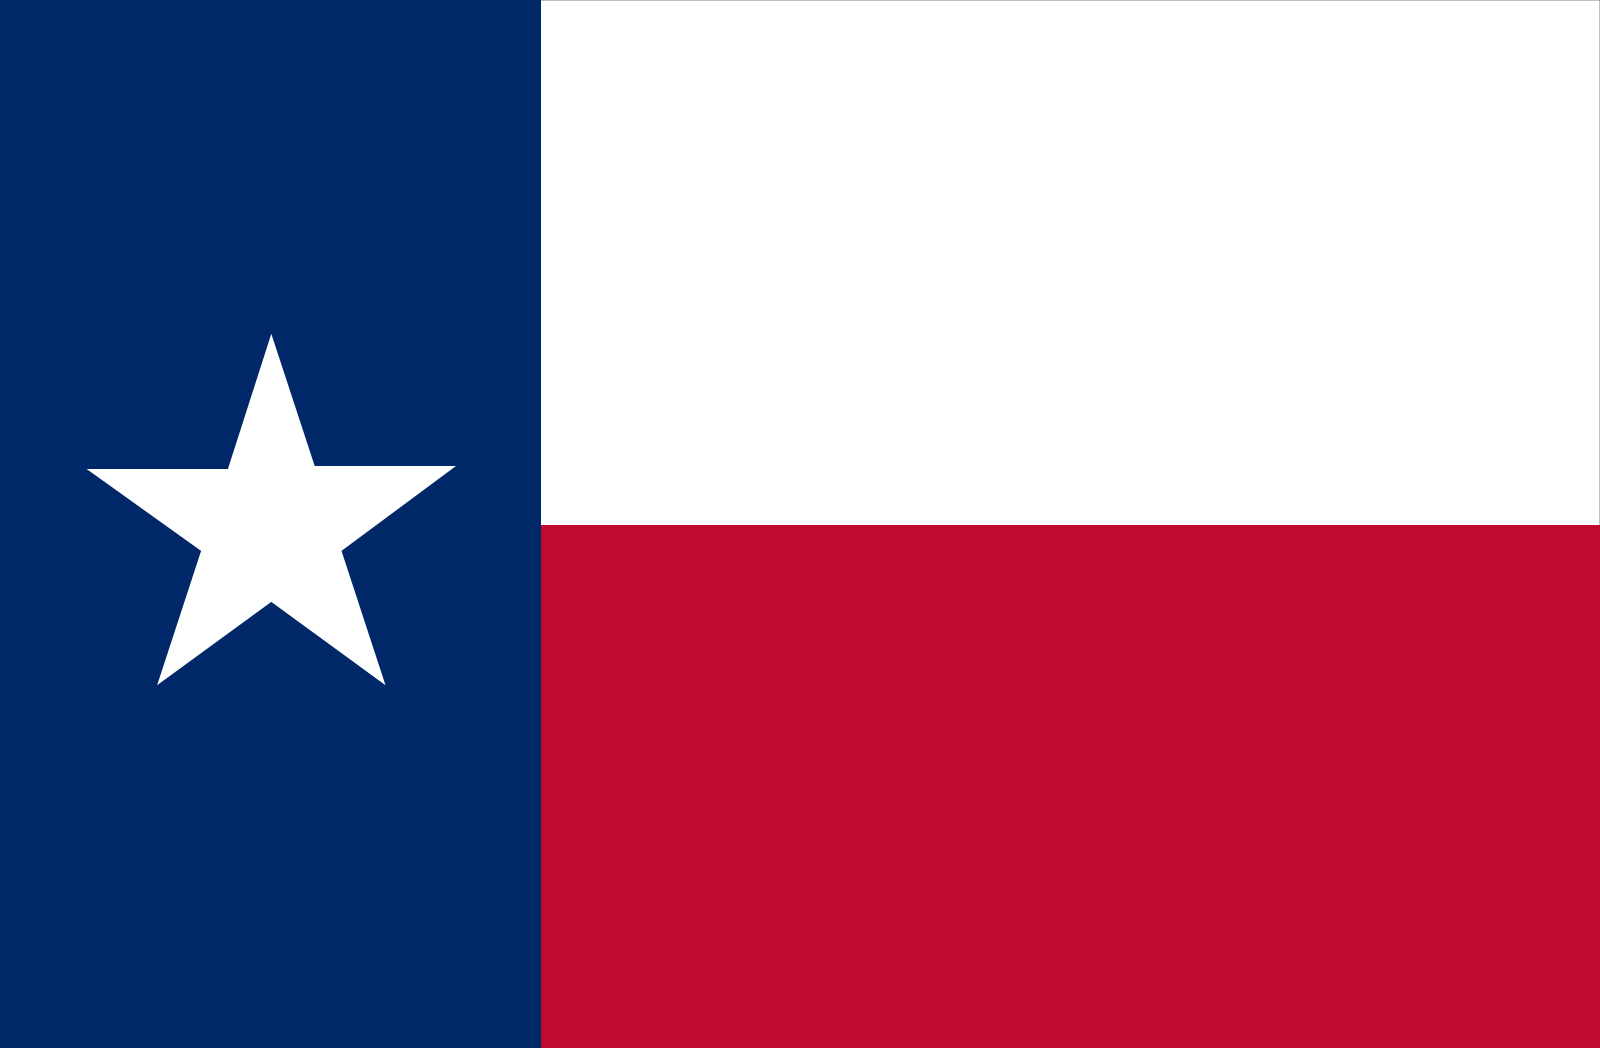 cannabis companies in texas face harsh regulations